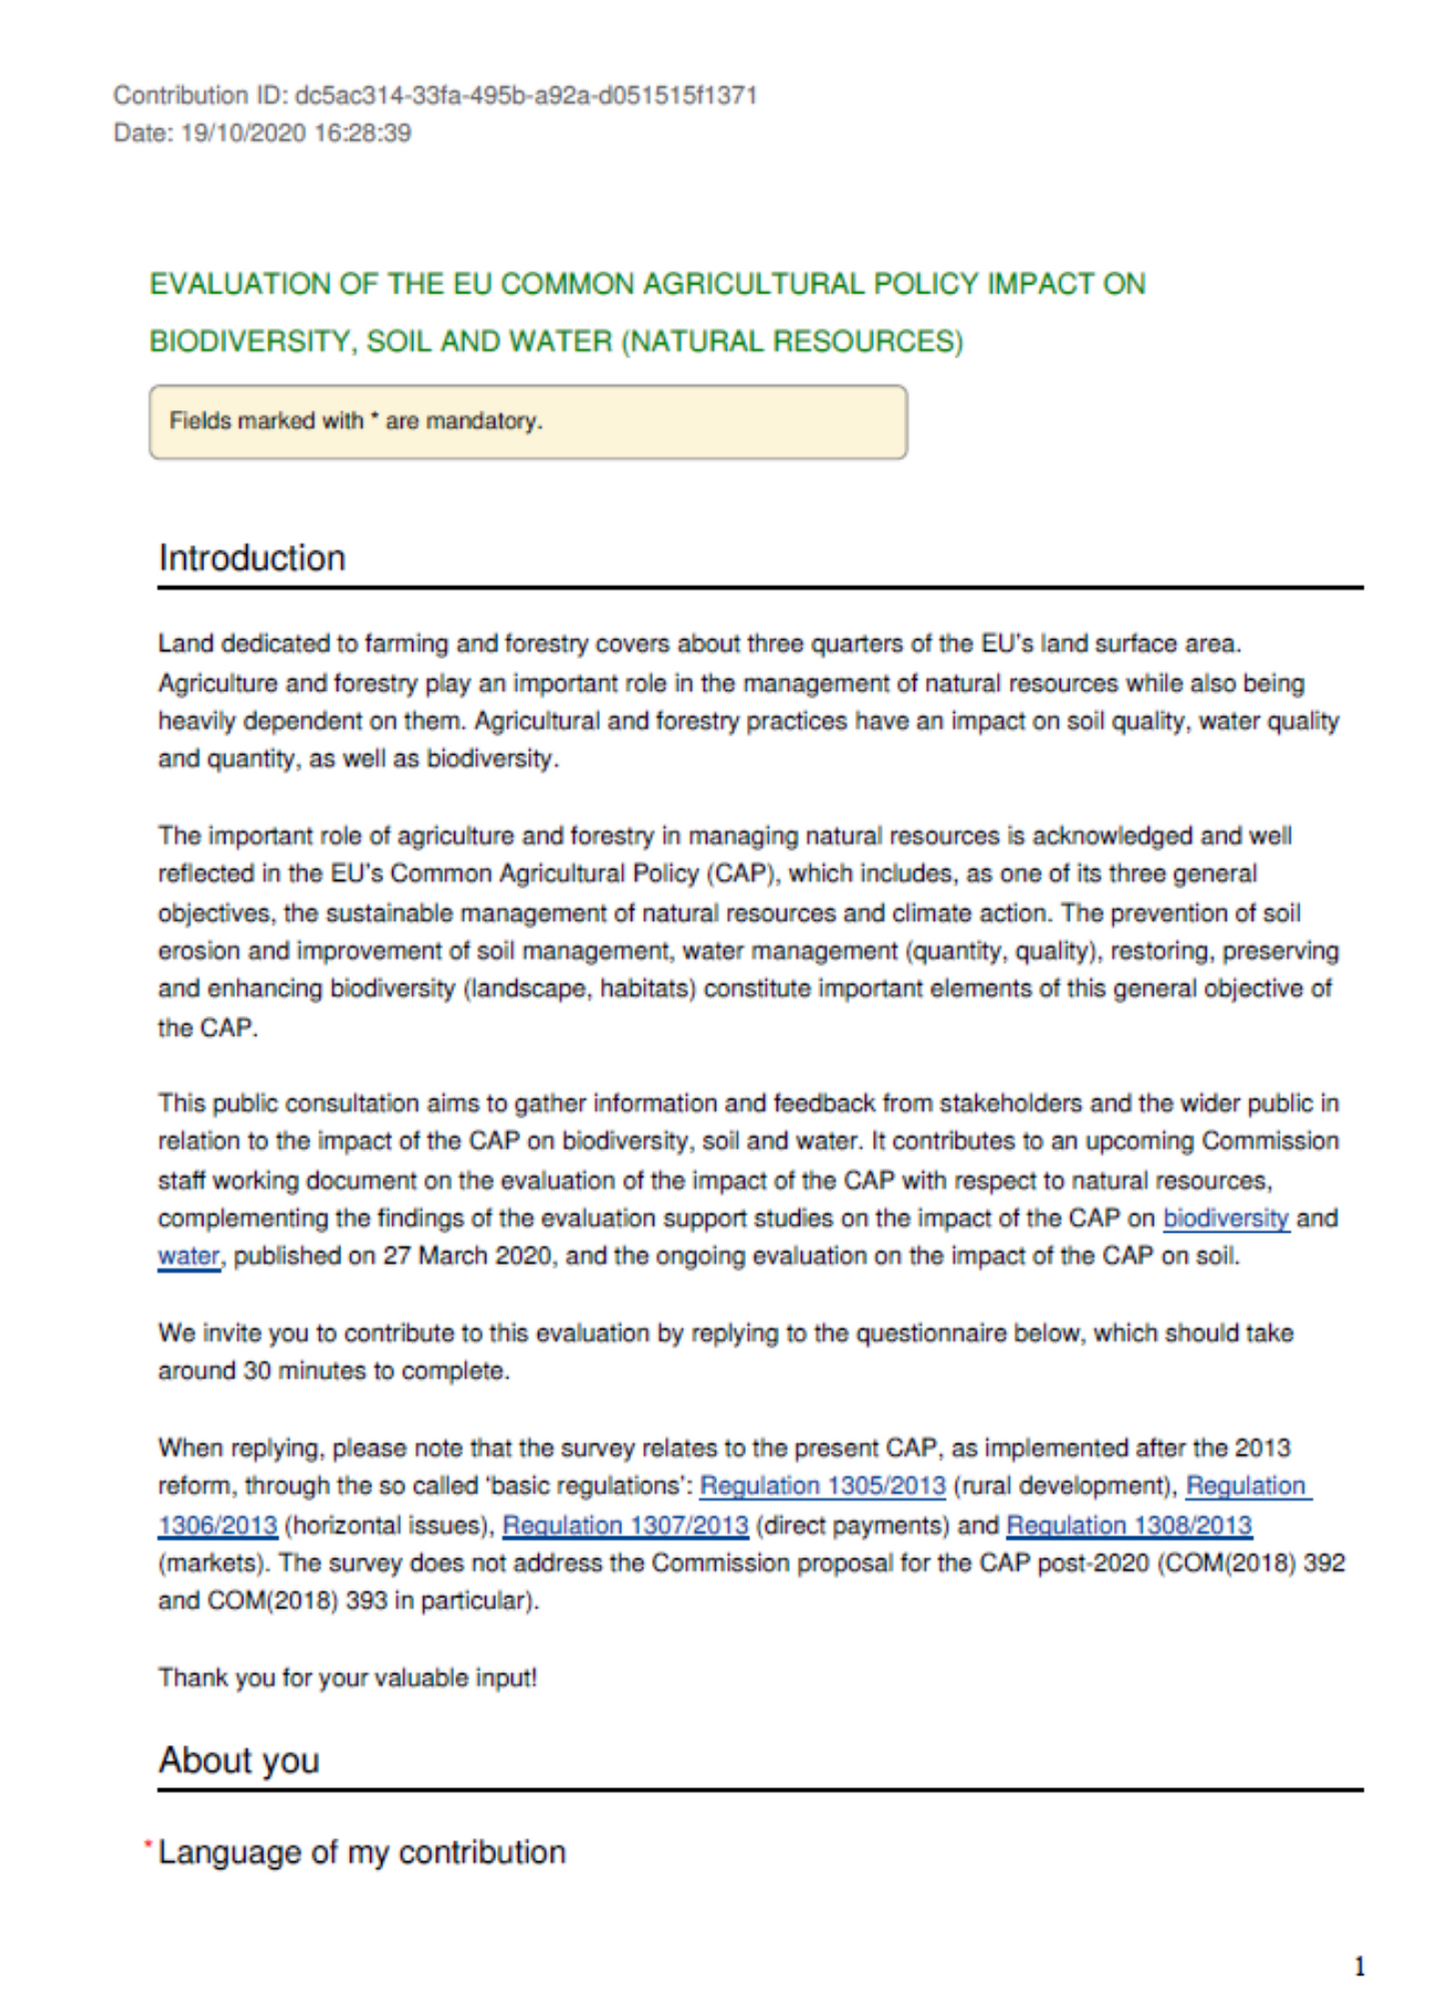 Contribution to the Public Consultation on the impact of CAP on water, biodiversity and soil